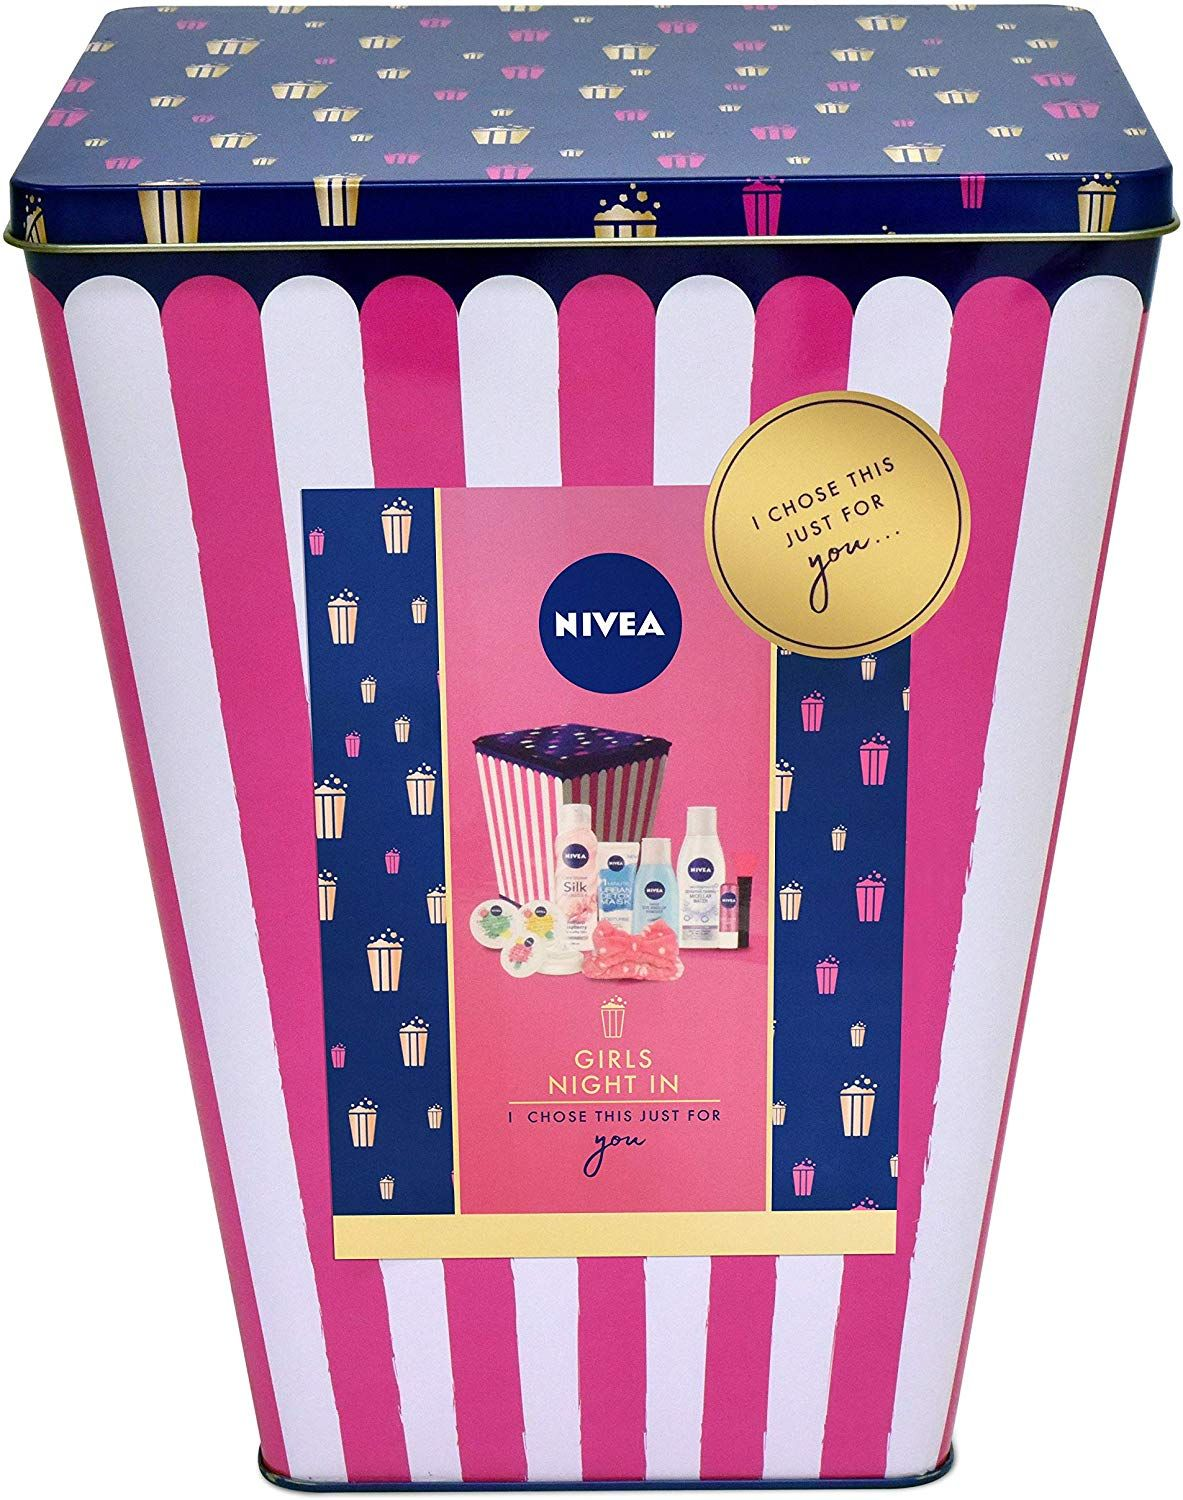 Nivea Gift Set Girls Night In Gift Pack For Her With 7 Items